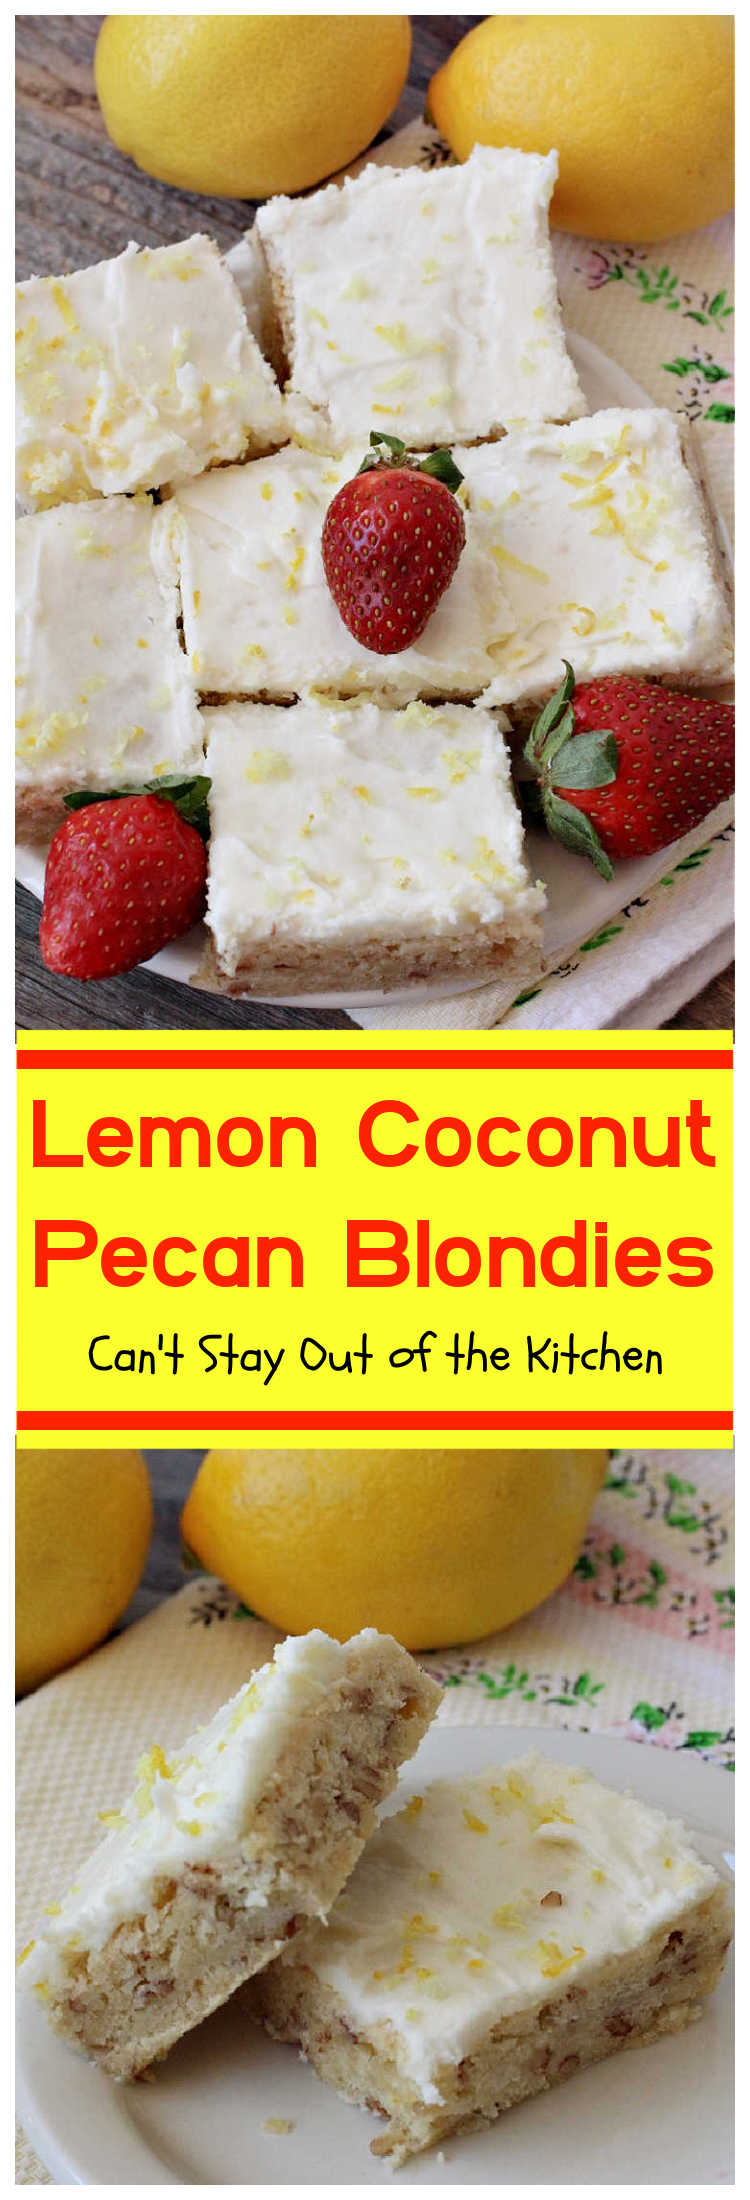 Lemon Coconut Pecan Blondies | Can't Stay Out of the Kitchen | these #cookies are divine! They have a heavenly #lemon icing and are filled with #coconut & #pecans. Great for #holiday #baking, #potlucks or #tailgating. #dessert #HolidayDessert #LemonDessert #brownie #LemonCoconutPecanBlondies